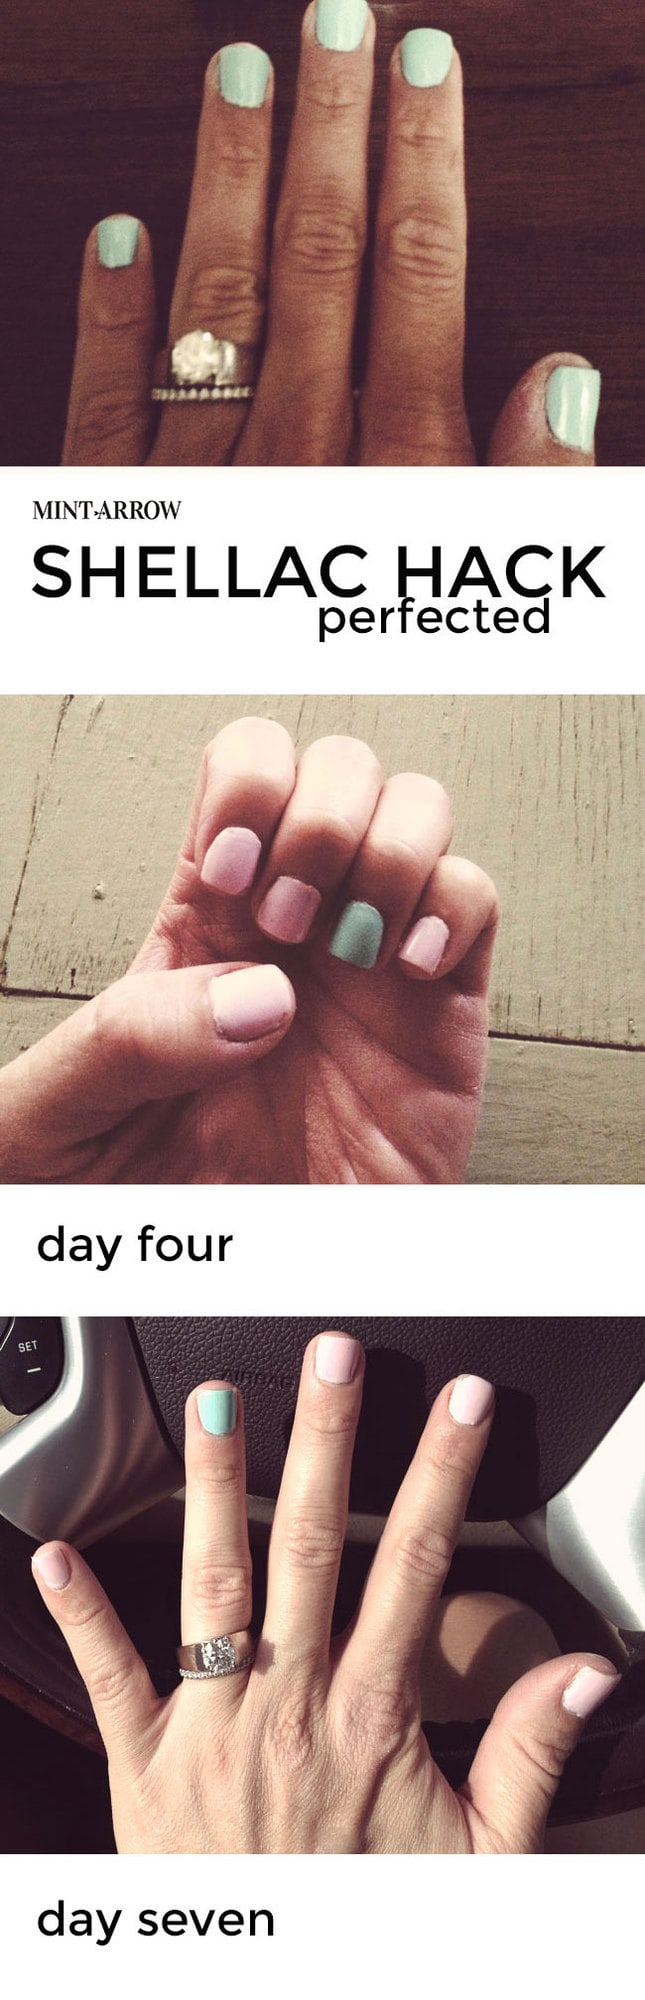 shellac hack - make your nail polish last a week! no curing light required, and it comes right off with nail polish remover.